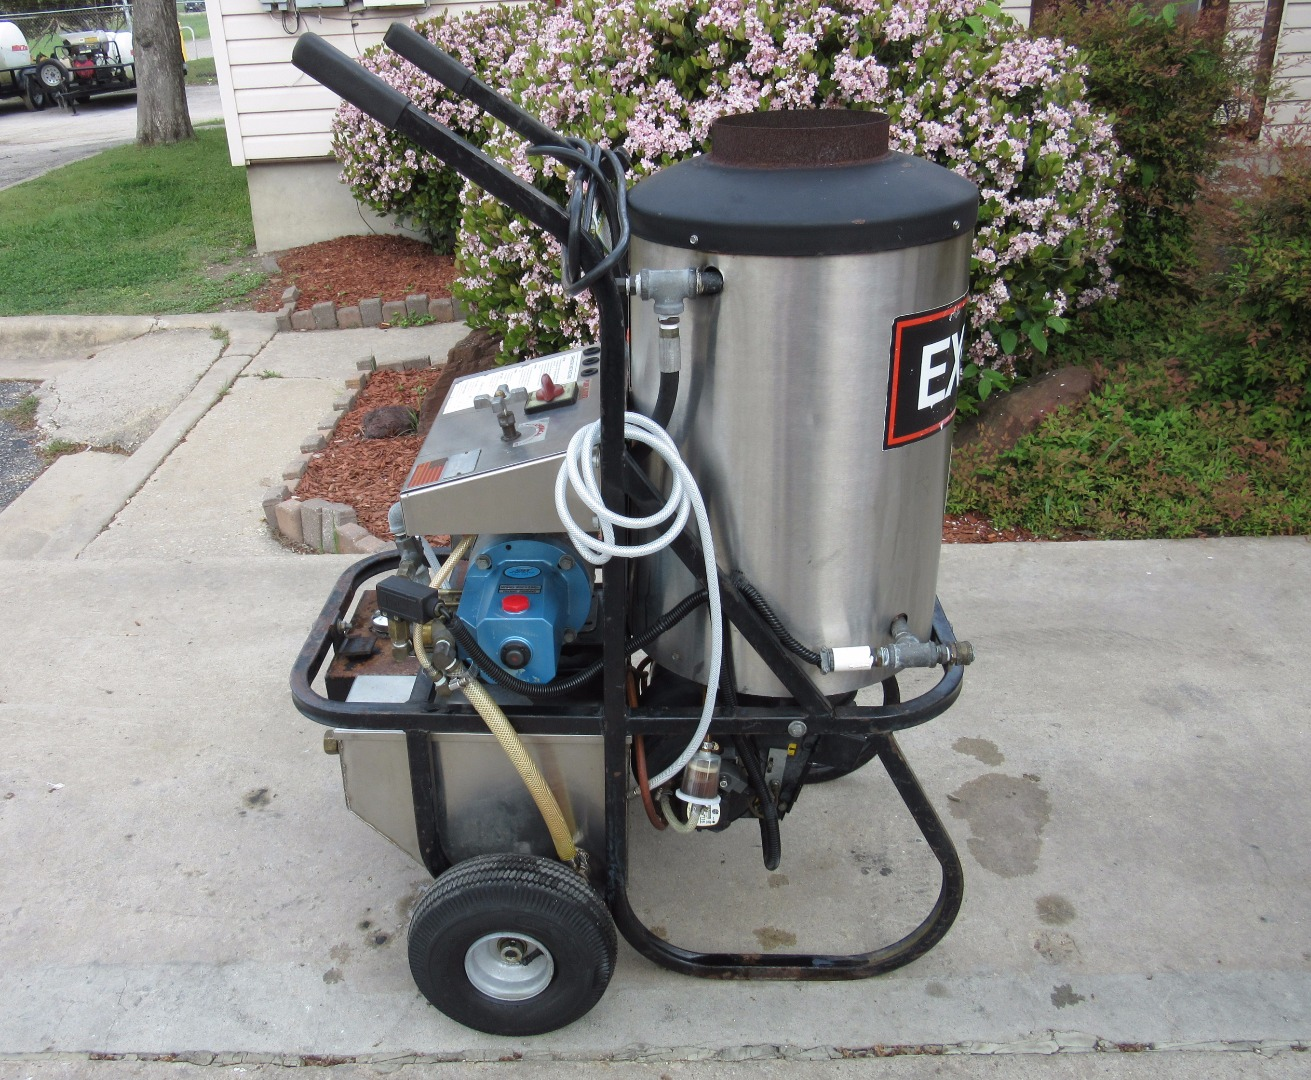 Enamour Used Excell 1003vswa Hot Water Diesel Burner 3gpm 1000psi Pressure Washer 1430692043479 Excell Pressure Washer Vr2522 Excell Pressure Washer Xr2600 houzz 01 Excell Pressure Washer